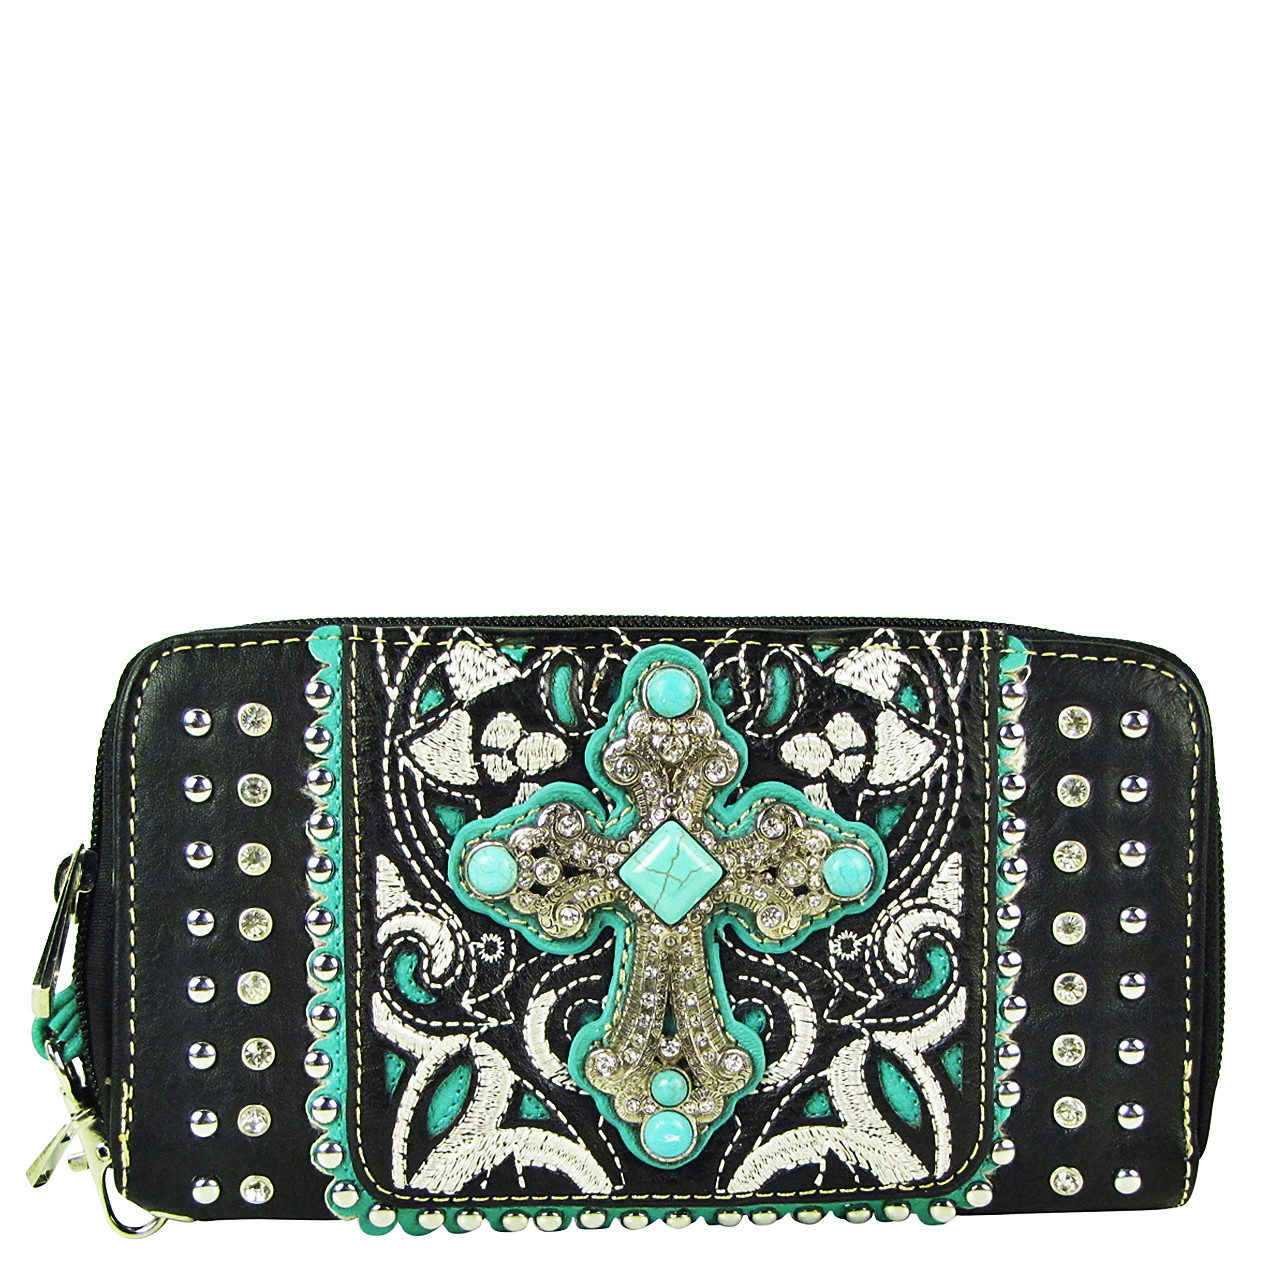 BLACK STUDDED RHINESTONE CROSS LOOK ZIPPER WALLET CB3-0409BLK